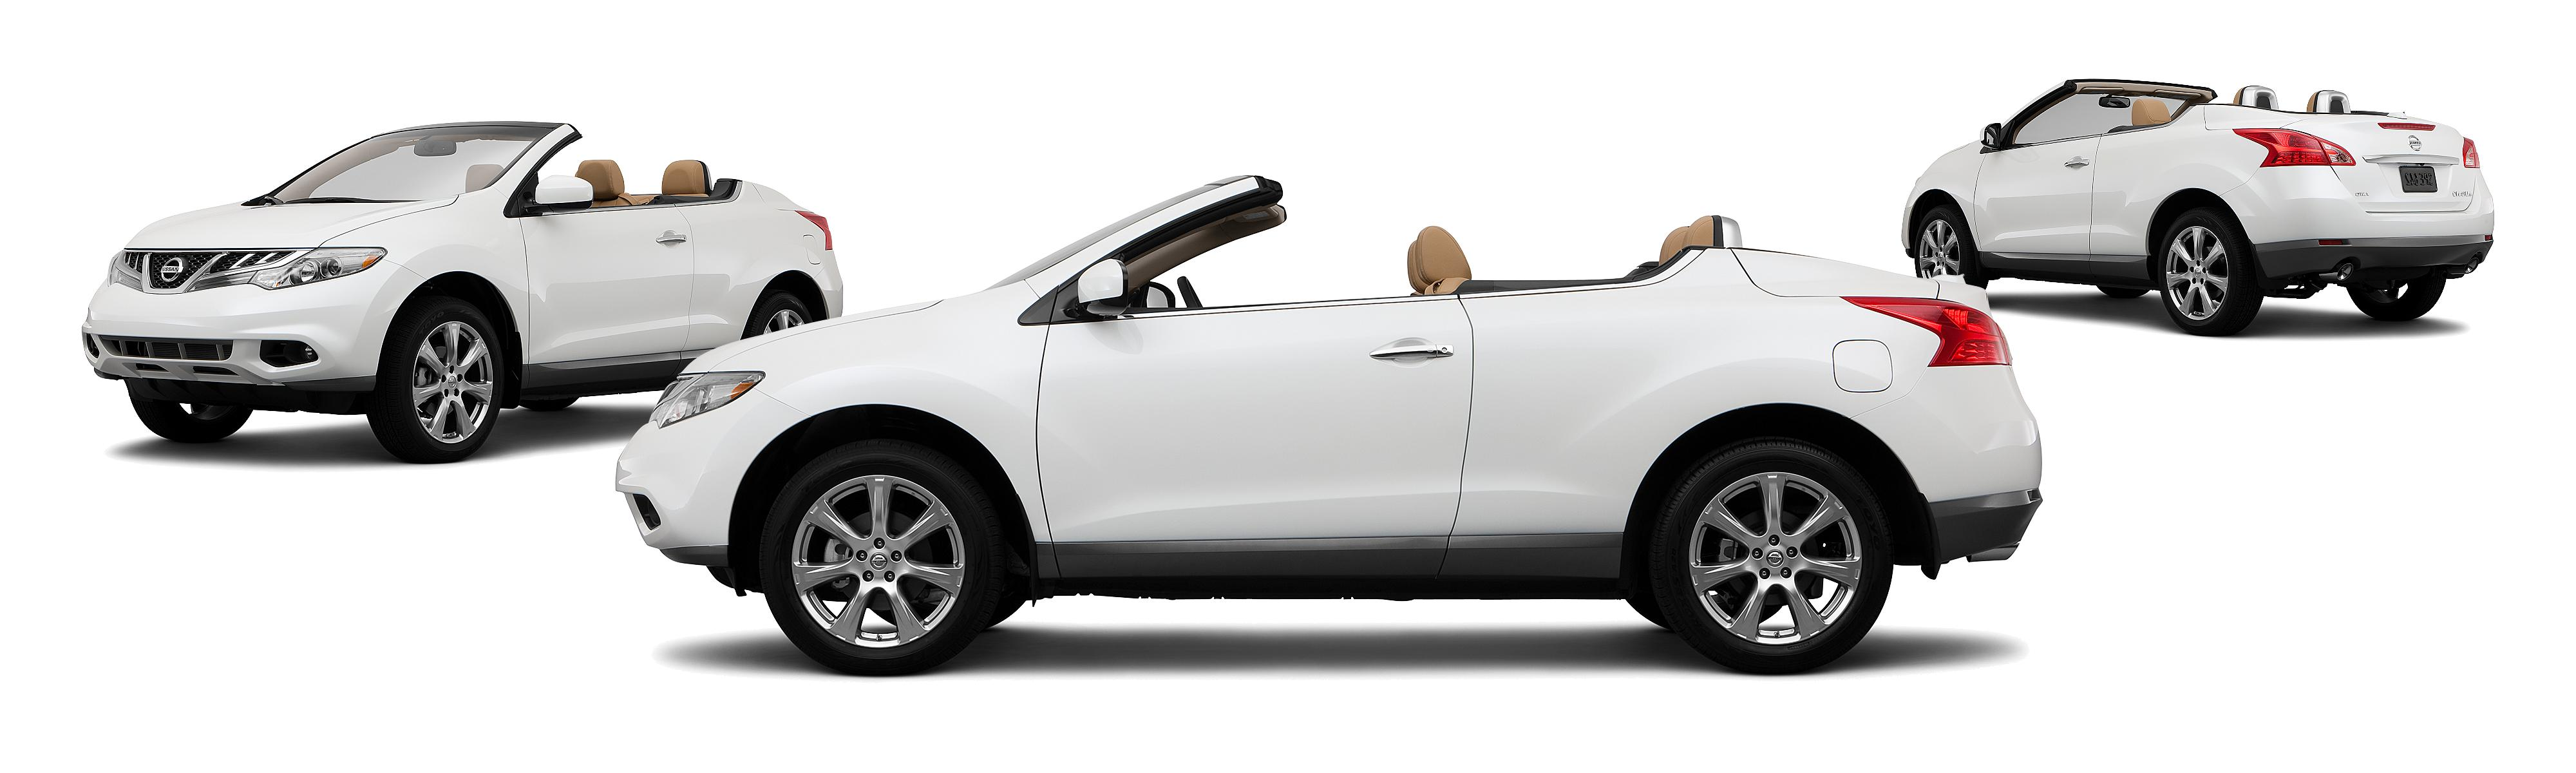 com articles sale for bestcarmag convertible murano photos informations makes nissan